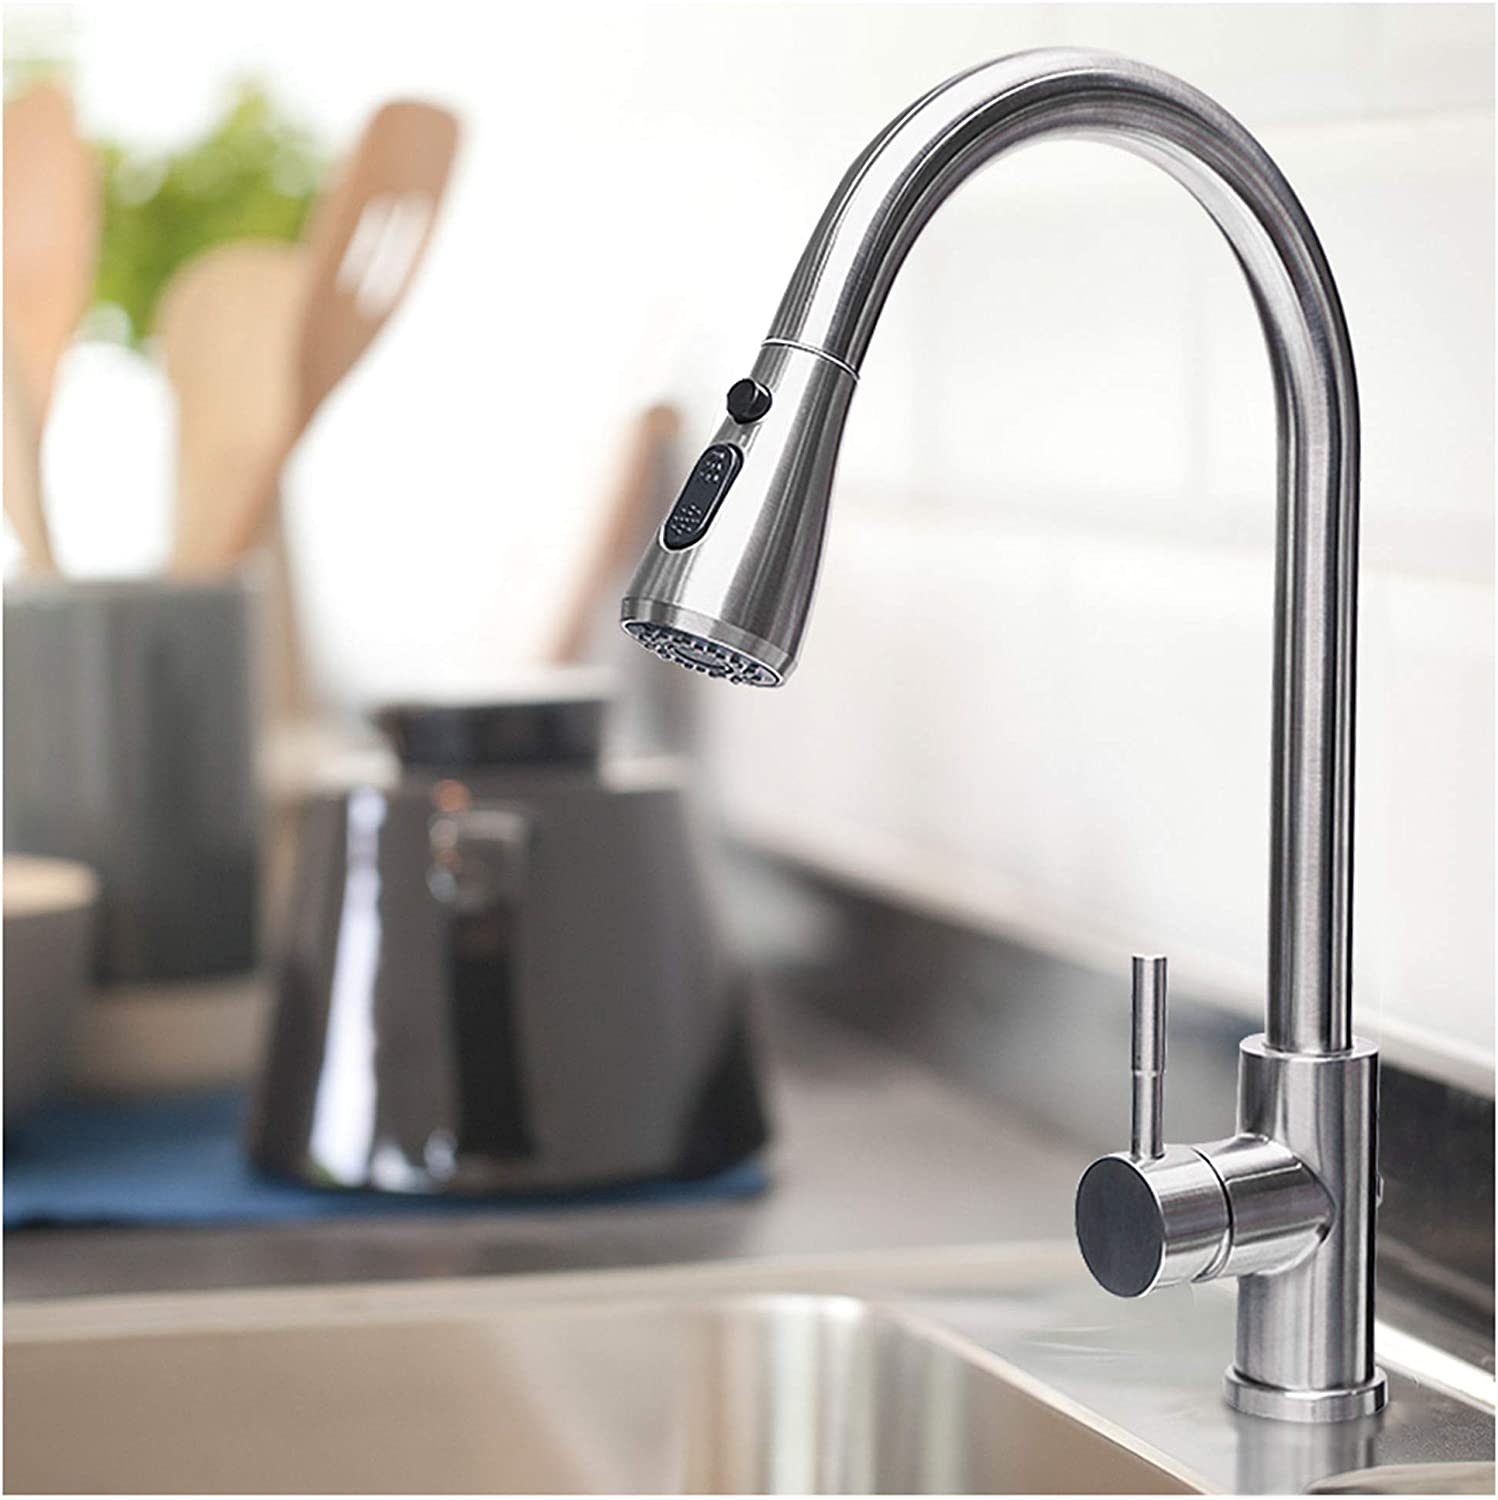 Rogsfn Modern High Arc Commercial Single Level Bar Faucet Pull Down Stainless Steel 1 Handle Brushed Nickel RV Kitchen Sink Faucet With Sprayer-straight